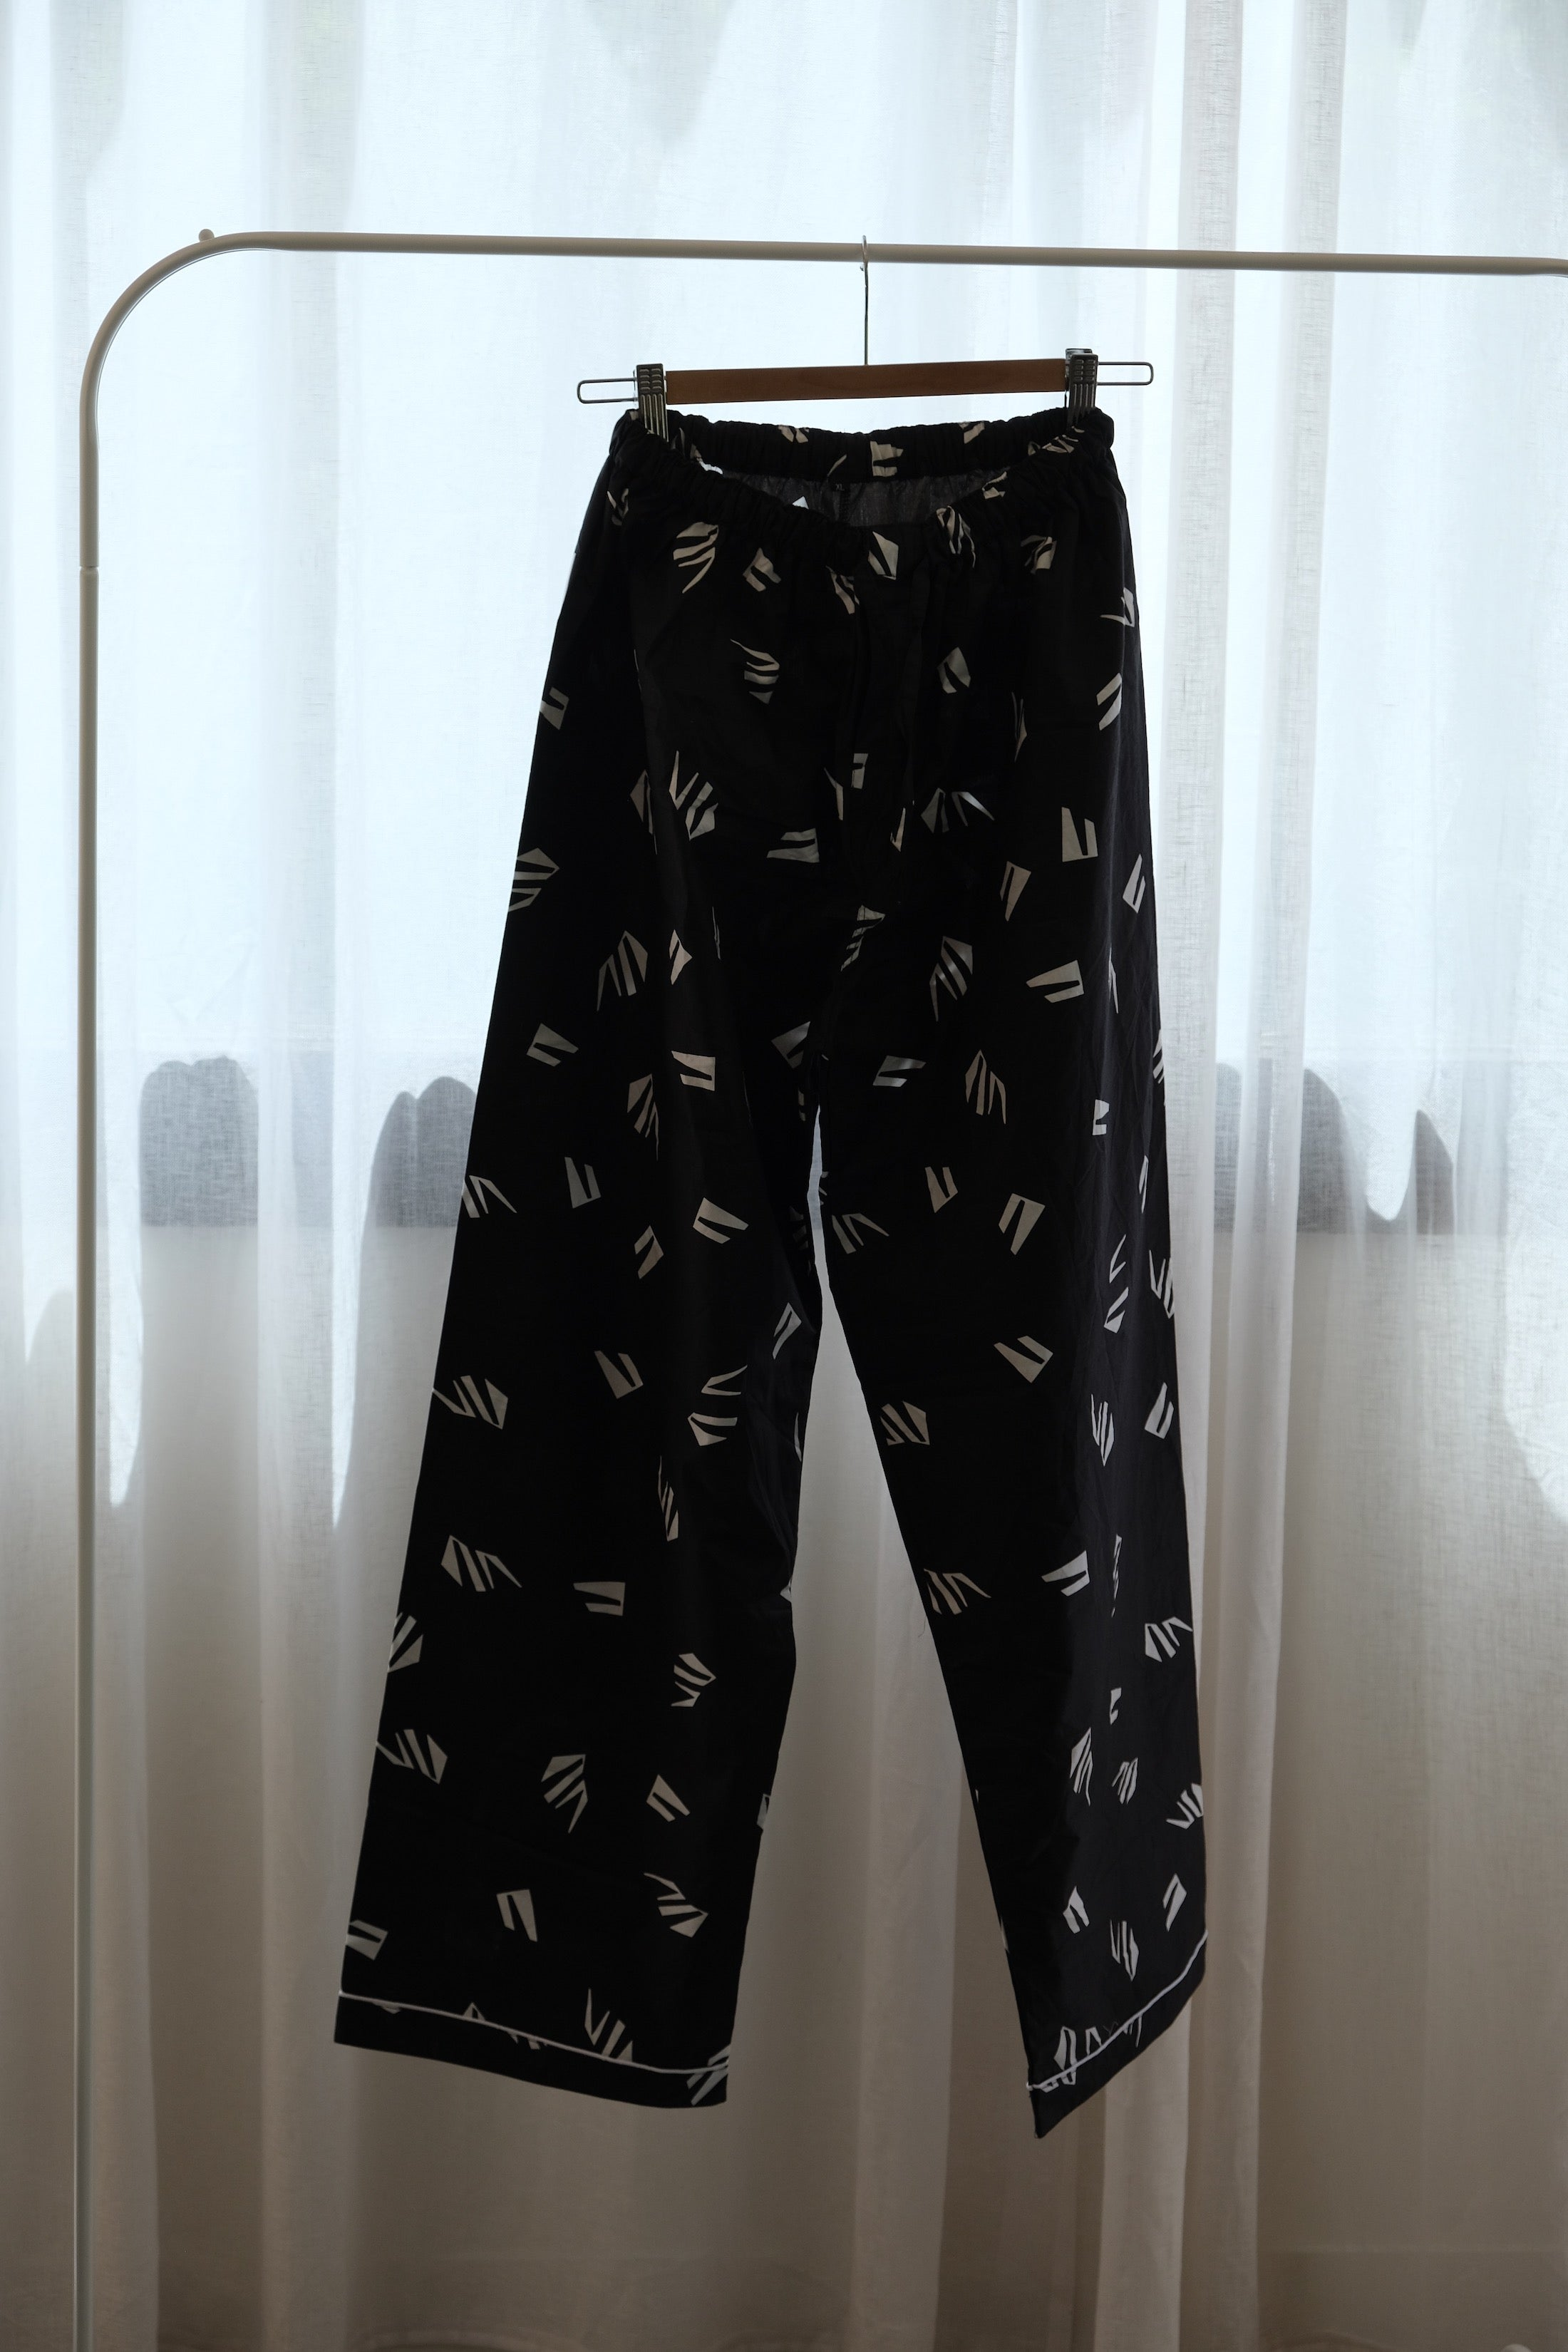 PYJAMA PANTS : LONG : BLACK PAPER